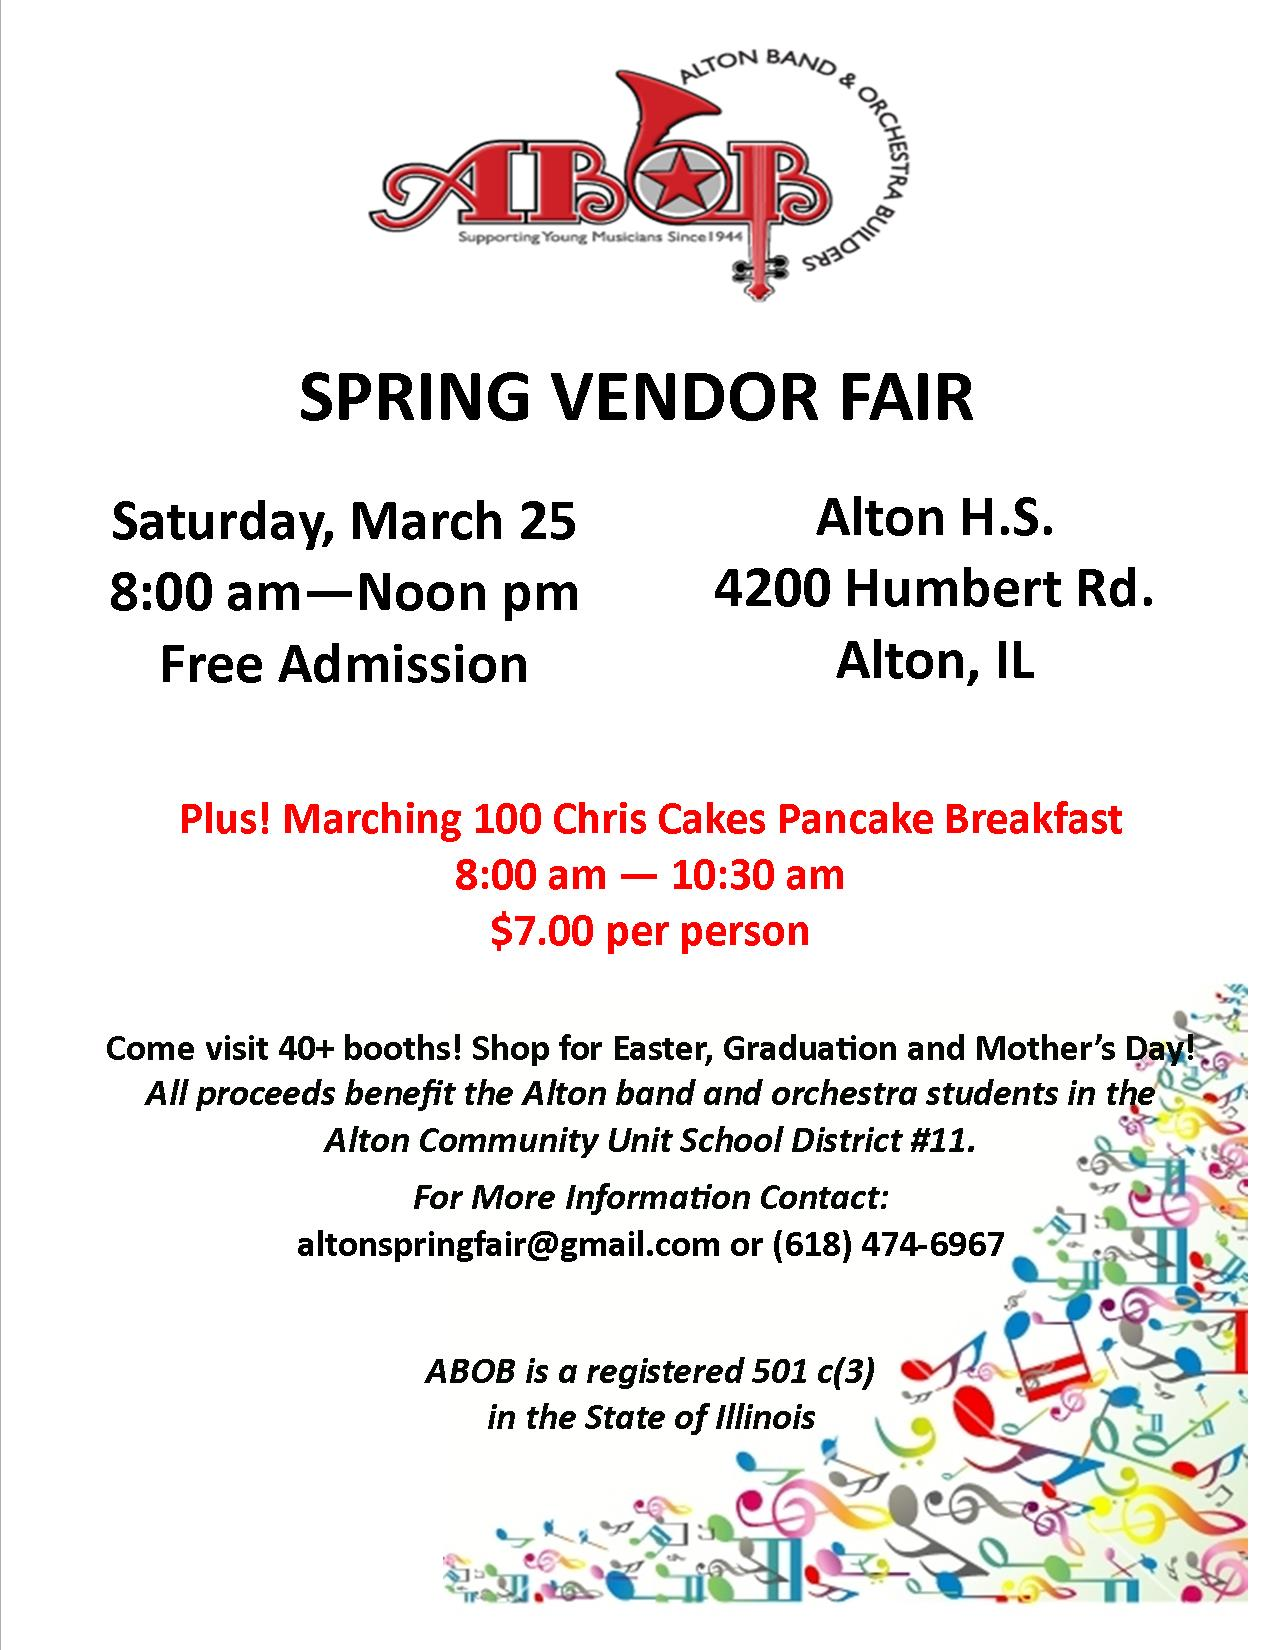 ABOB Spring Vendor Fair Flyer